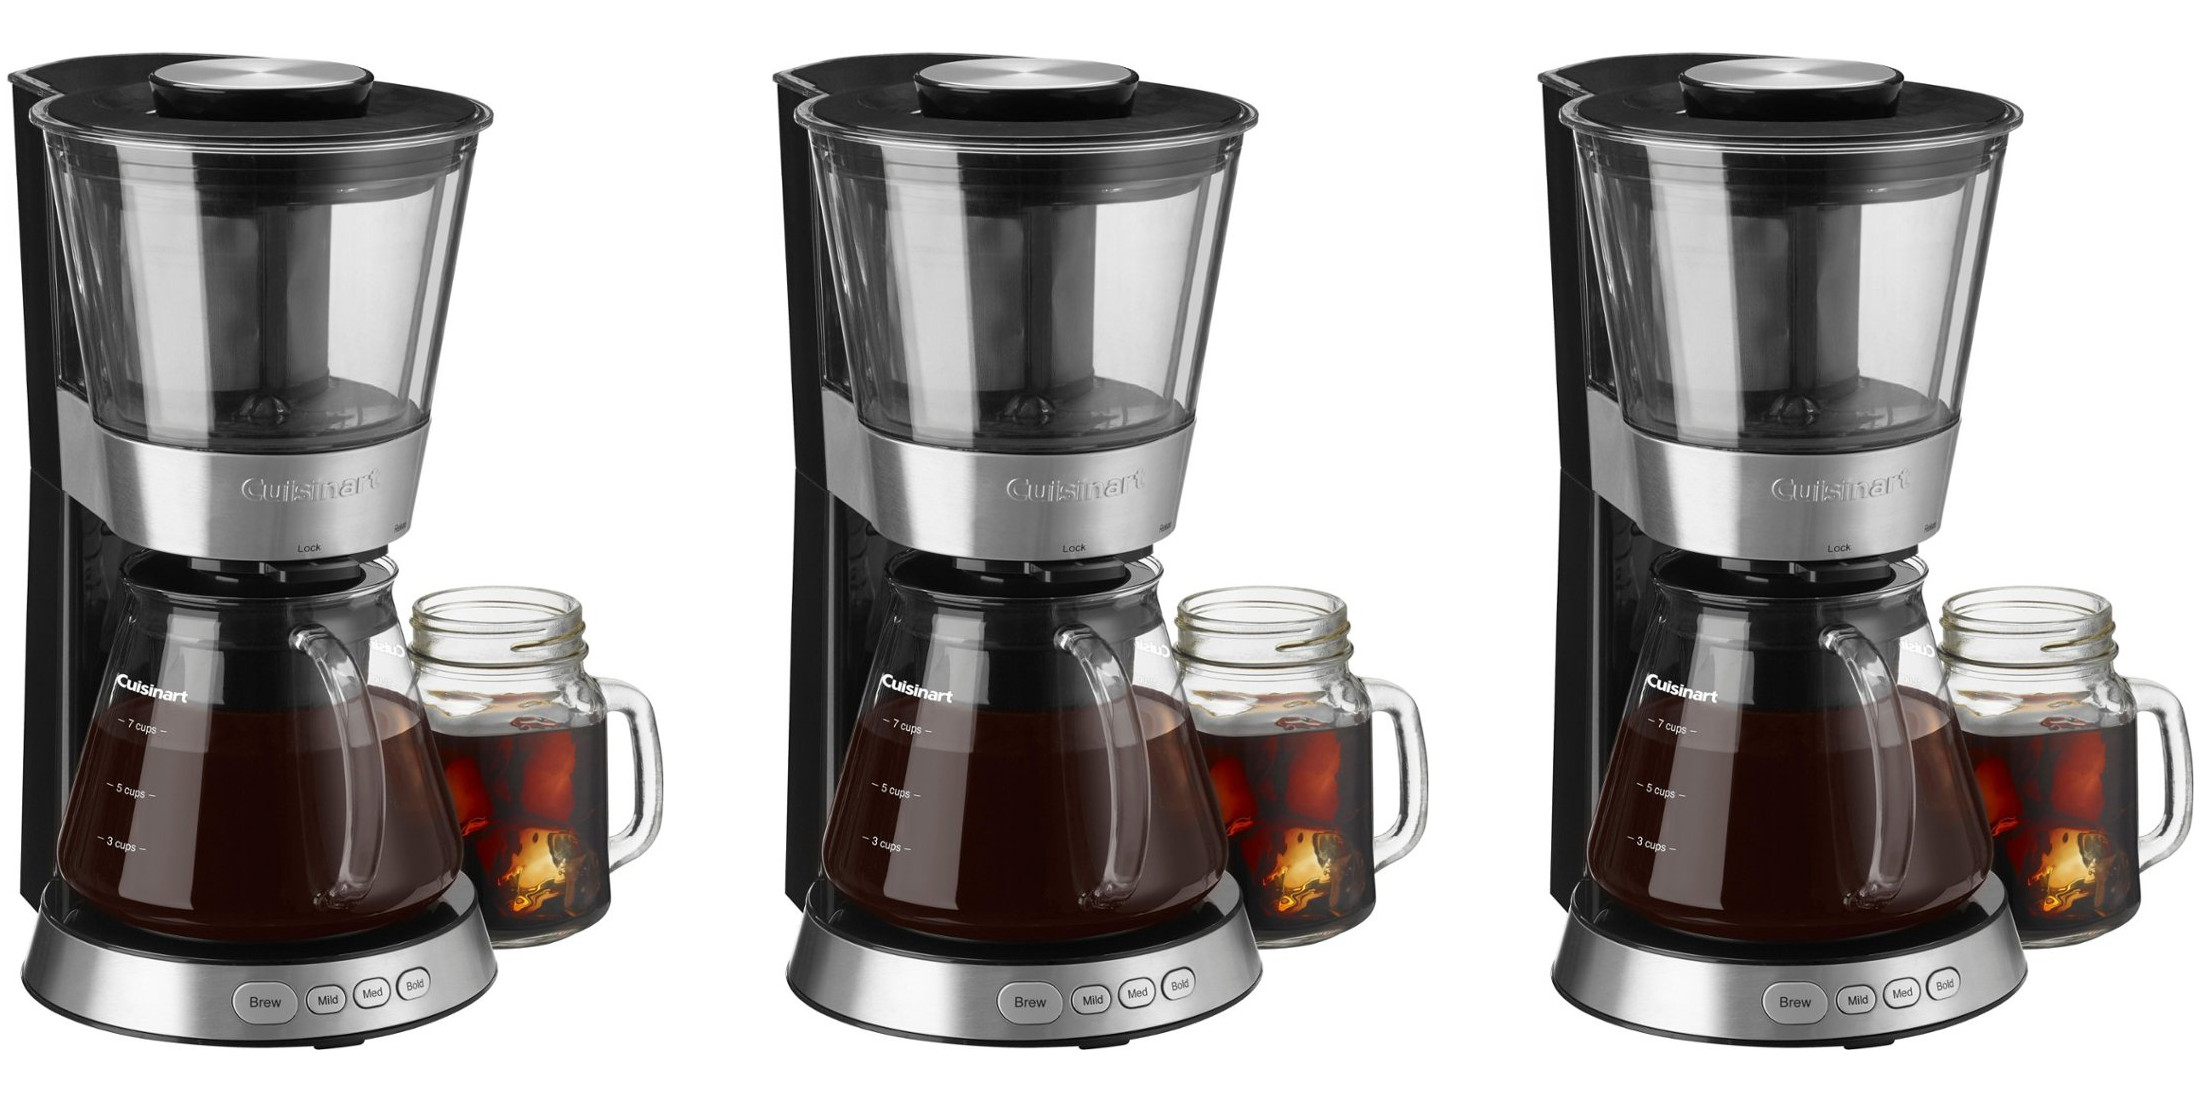 Cuisinart's 7-Cup Cold-Brew Coffee Maker is down to $50 for today only (Reg. up to $100)